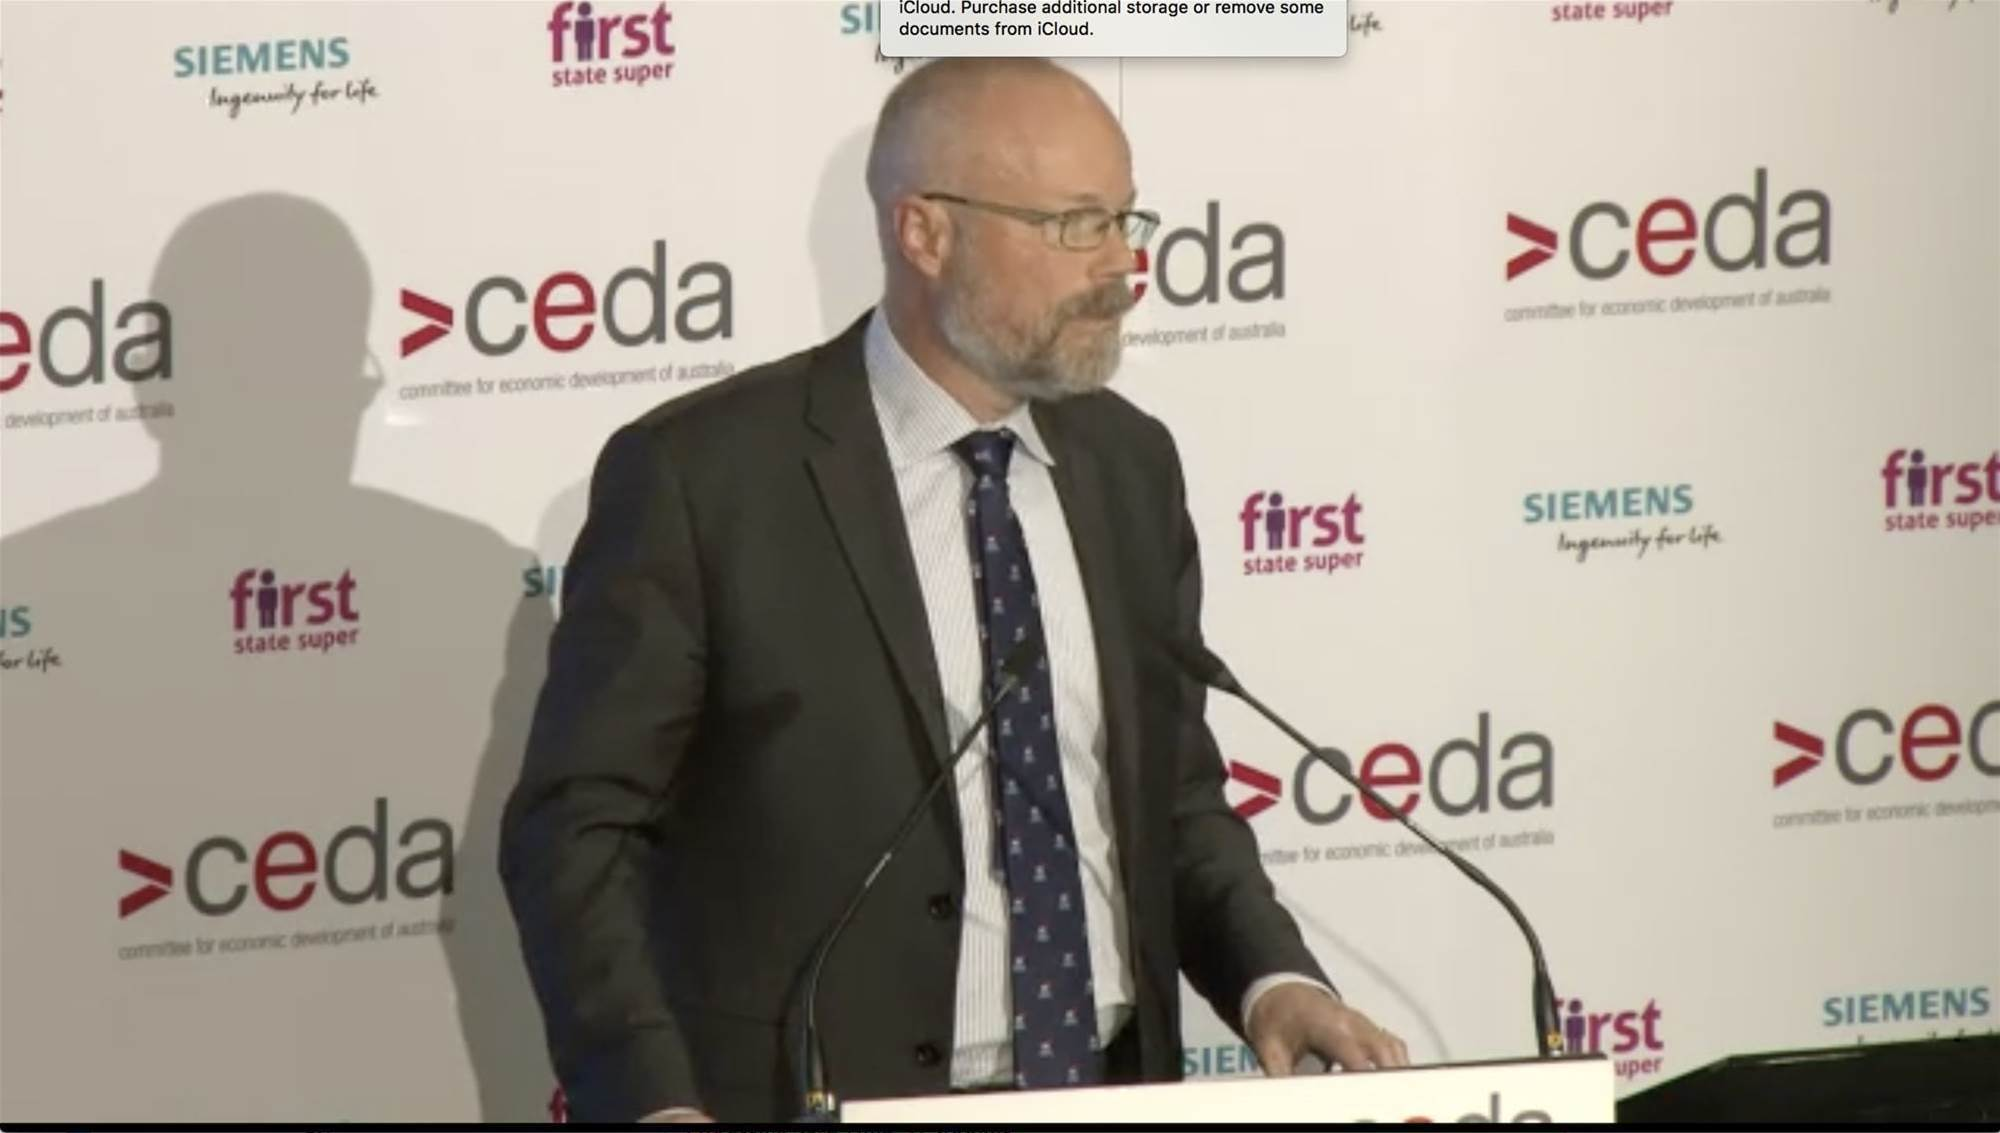 PageUp 'victimised' by disclosure laws: MacGibbon